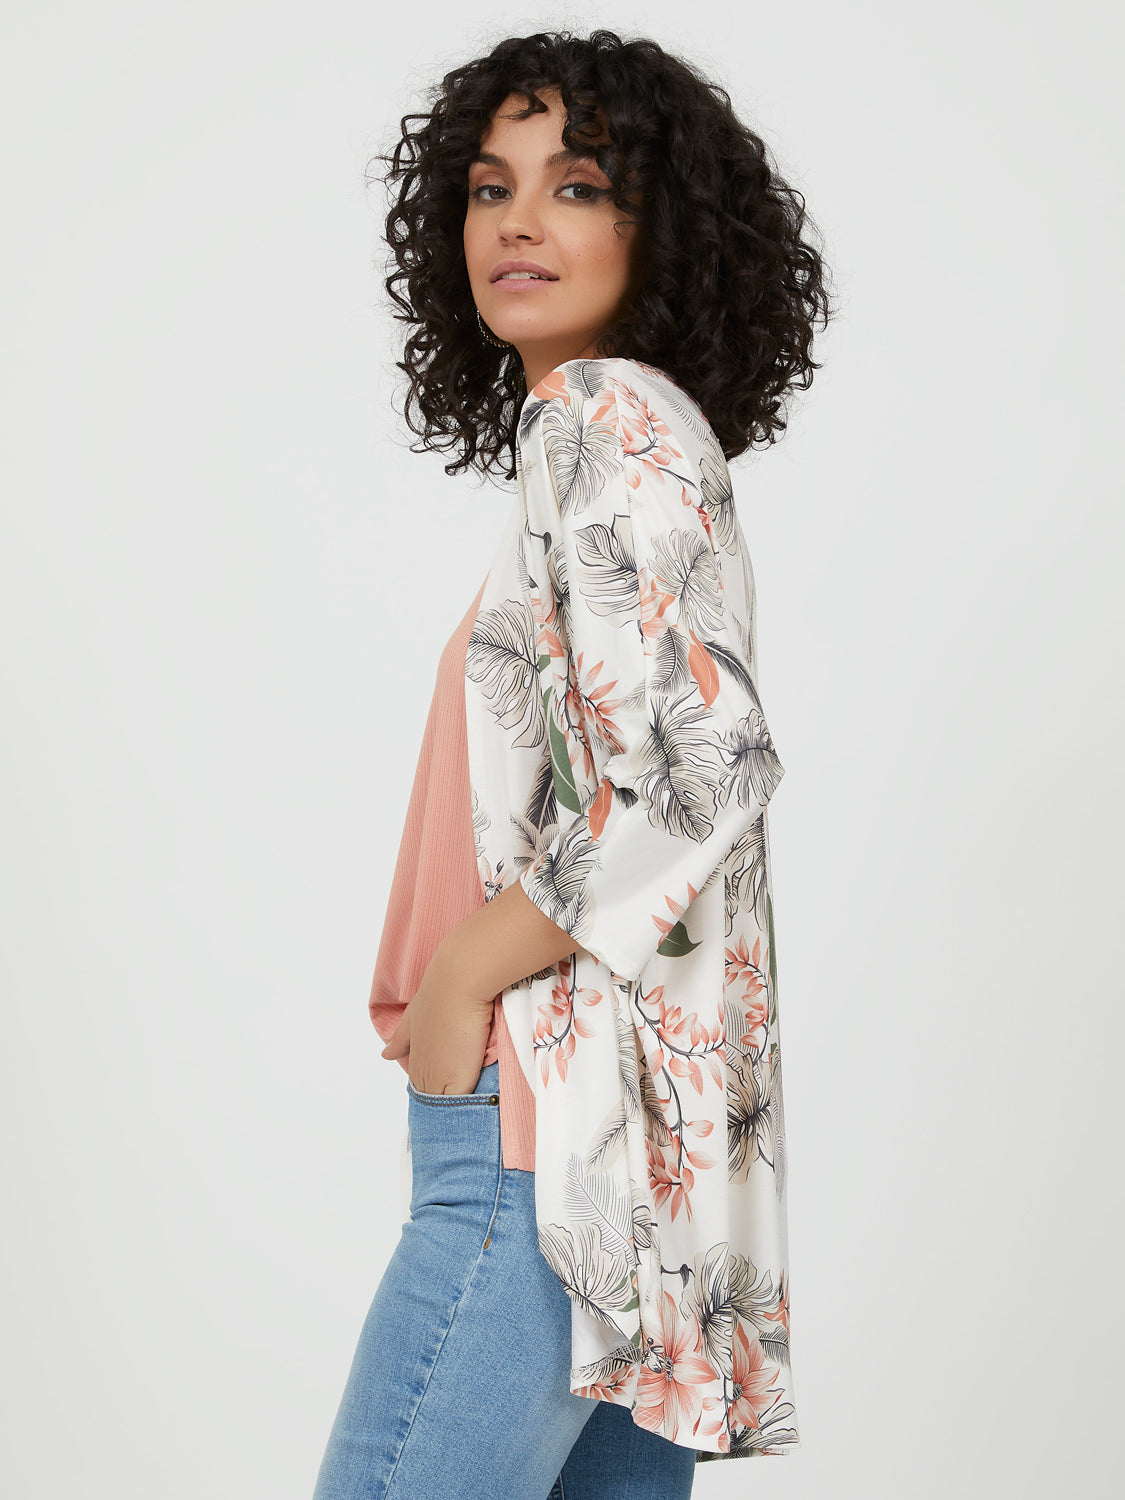 ¾ Sleeve Floral Open Front Cardigan